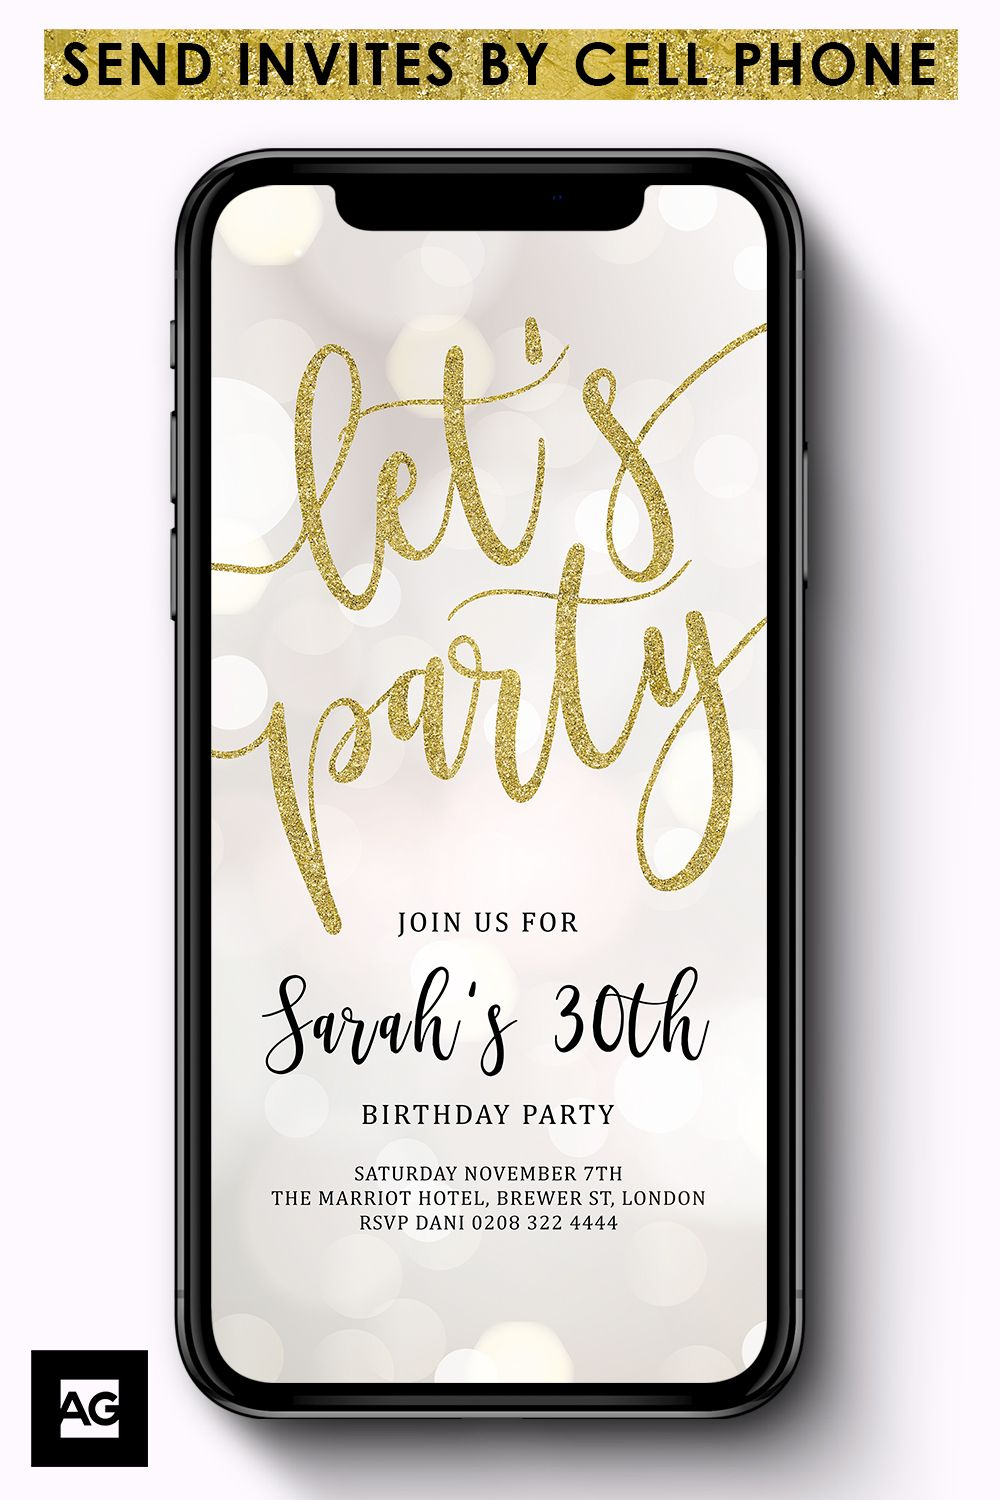 Tell Everyone Quickly About Your Party With These Electronic Cell Phone Invites The Gold Glitter Lets Invitation Comes As An Instant Download And Is